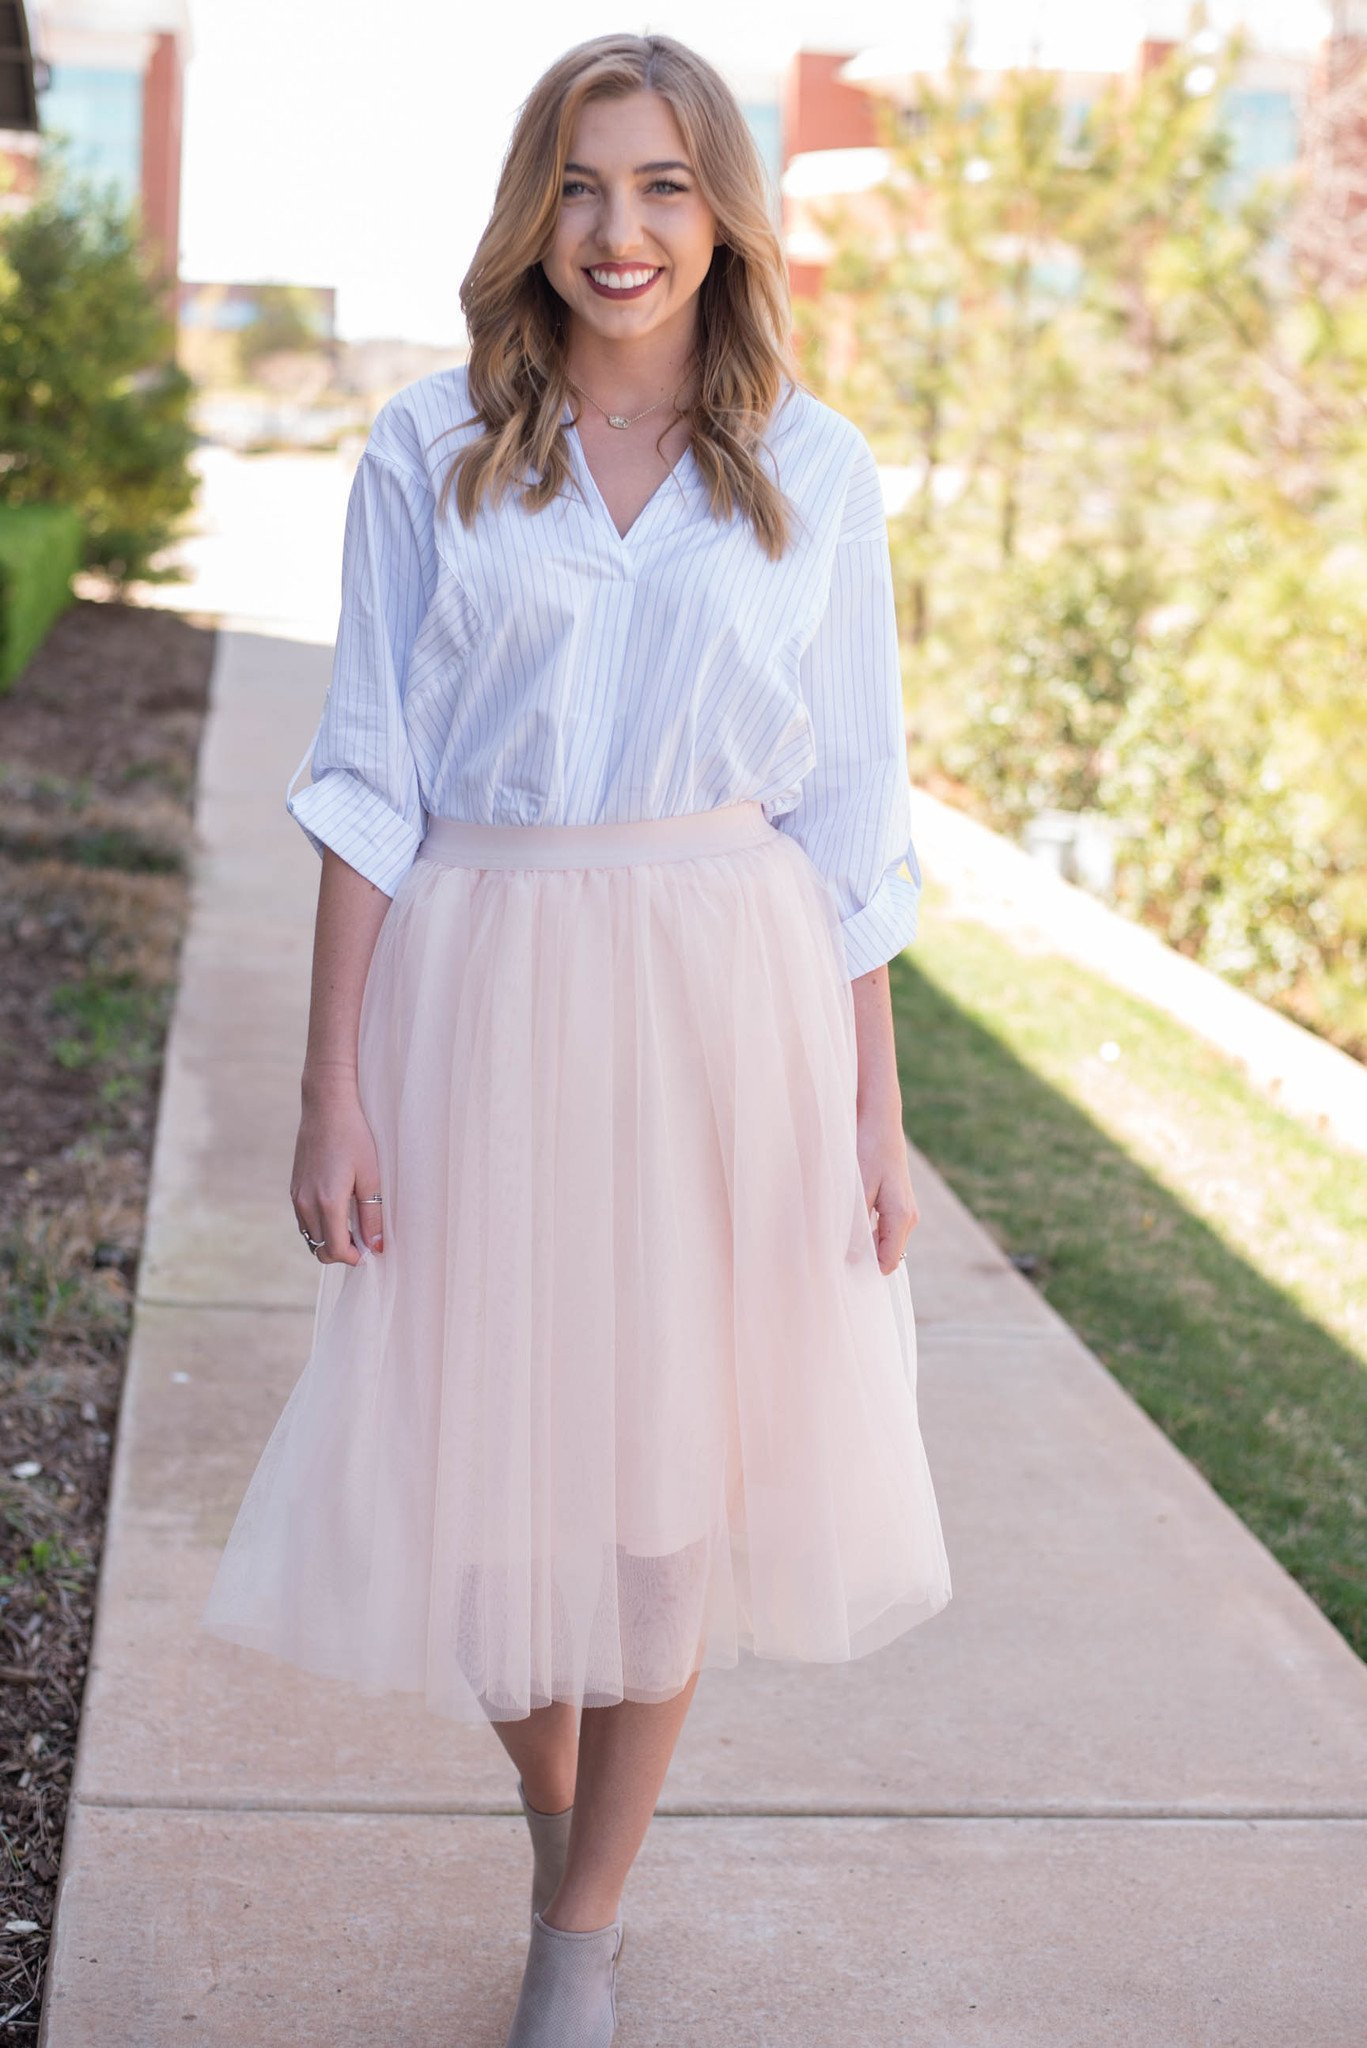 Tulle Midi Skirt | Tulle Skirts for Adults | Tulle Skirt Wedding